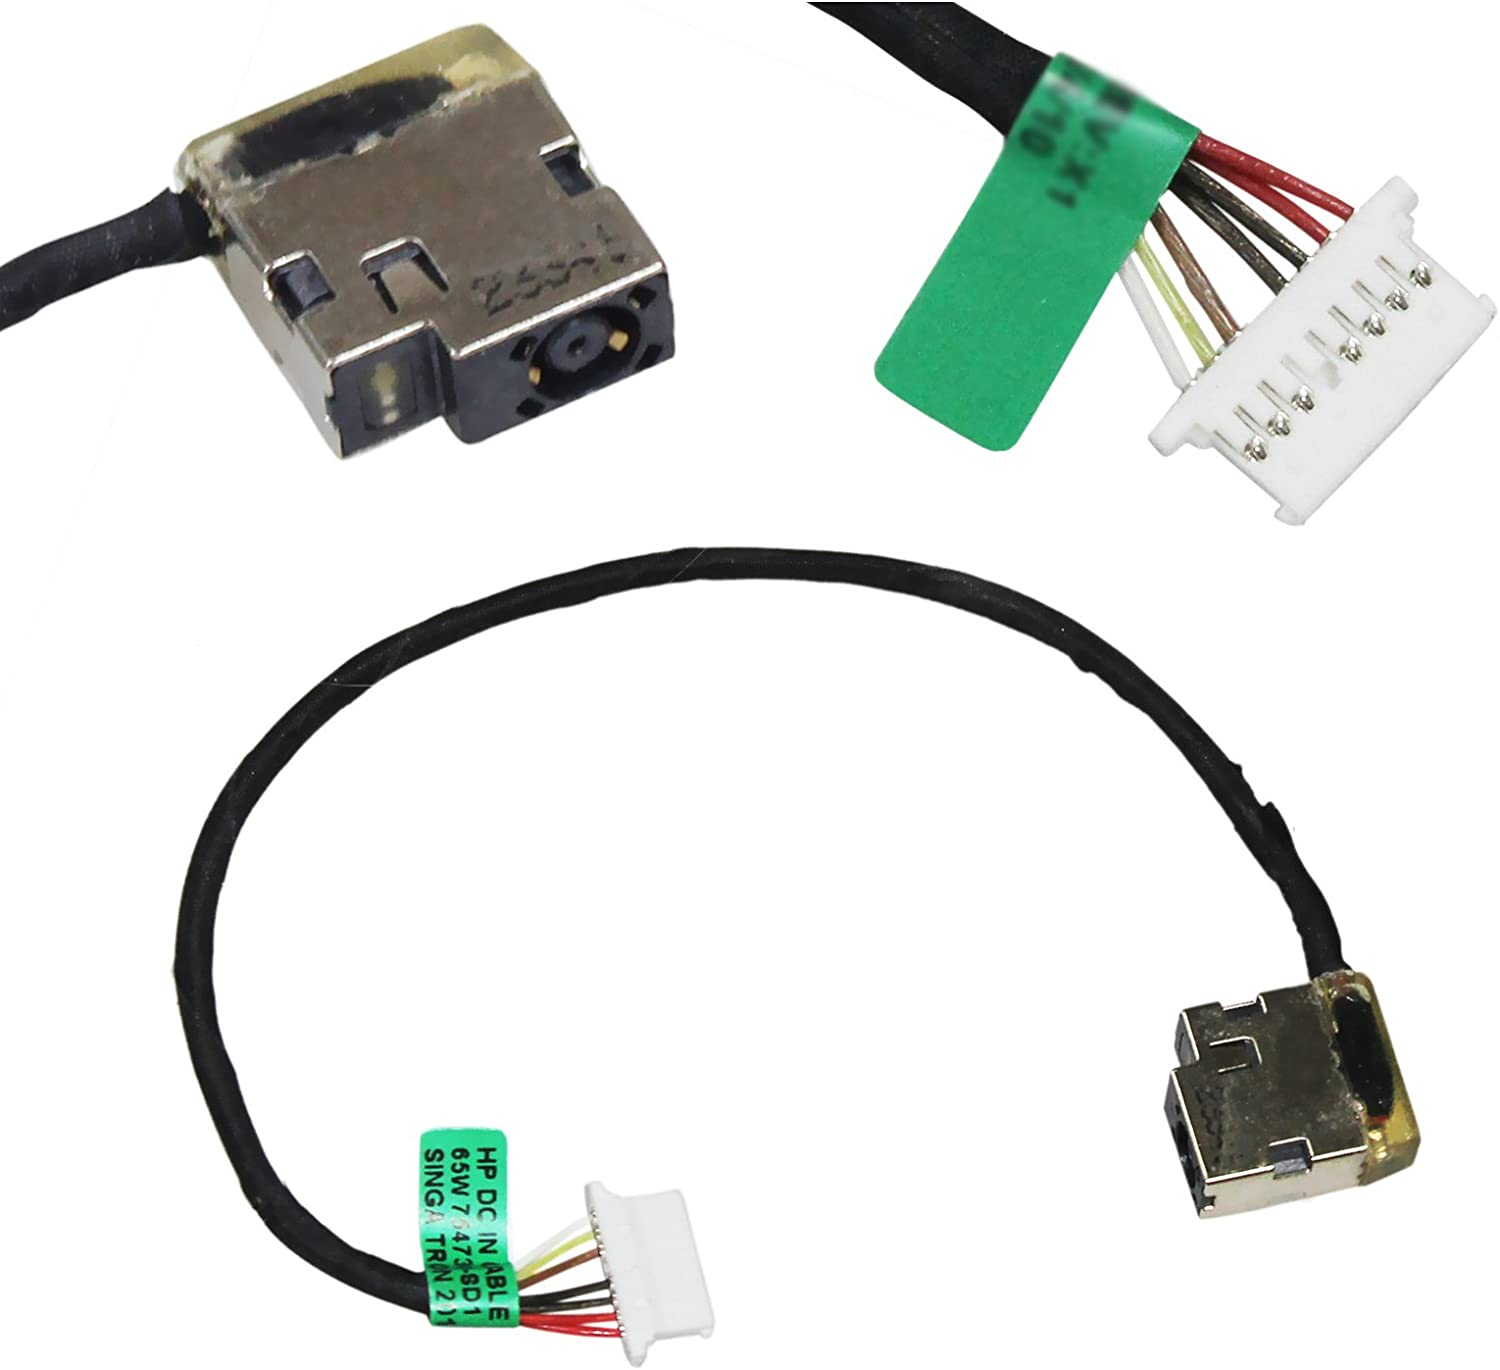 Zahara DC Power Jack with Cable Harness Replacement for HP Envy 17t-bw000 17-bw0011nr 17-bw0008ca 17-bw0003ca